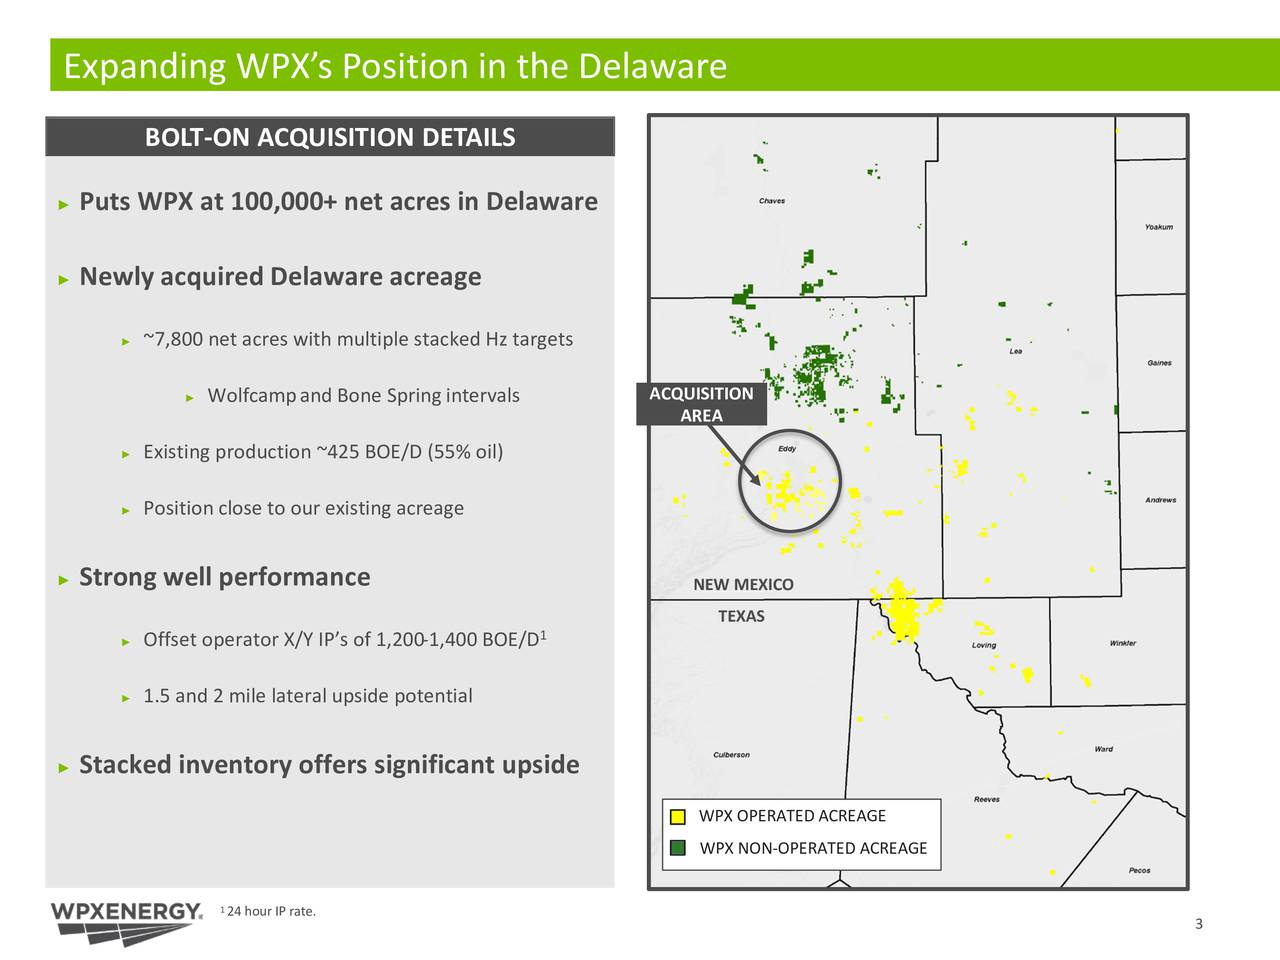 BOLT -ON ACQUISITION DETAILS Puts WPX at 100,000+ net acres in Delaware Newly acquired Delaware acreage ~7,800 net acres with multiple stacked Hz targets Wolfcampand Bone Spring intervals ACQUISITION AREA Existing production ~425 BOE/D (55% oil) Position close to our existing acreage Strong well performance NEW MEXICO TEXAS Offset operator X/Y IPs of 1,200-1,400 BOE/D 1.5 and 2 mile lateral upside potential Stacked inventory offers significant upside WPX OPERATED ACREAGE WPX NON-OPERATED ACREAGE 1 24 hour IP rate. 3